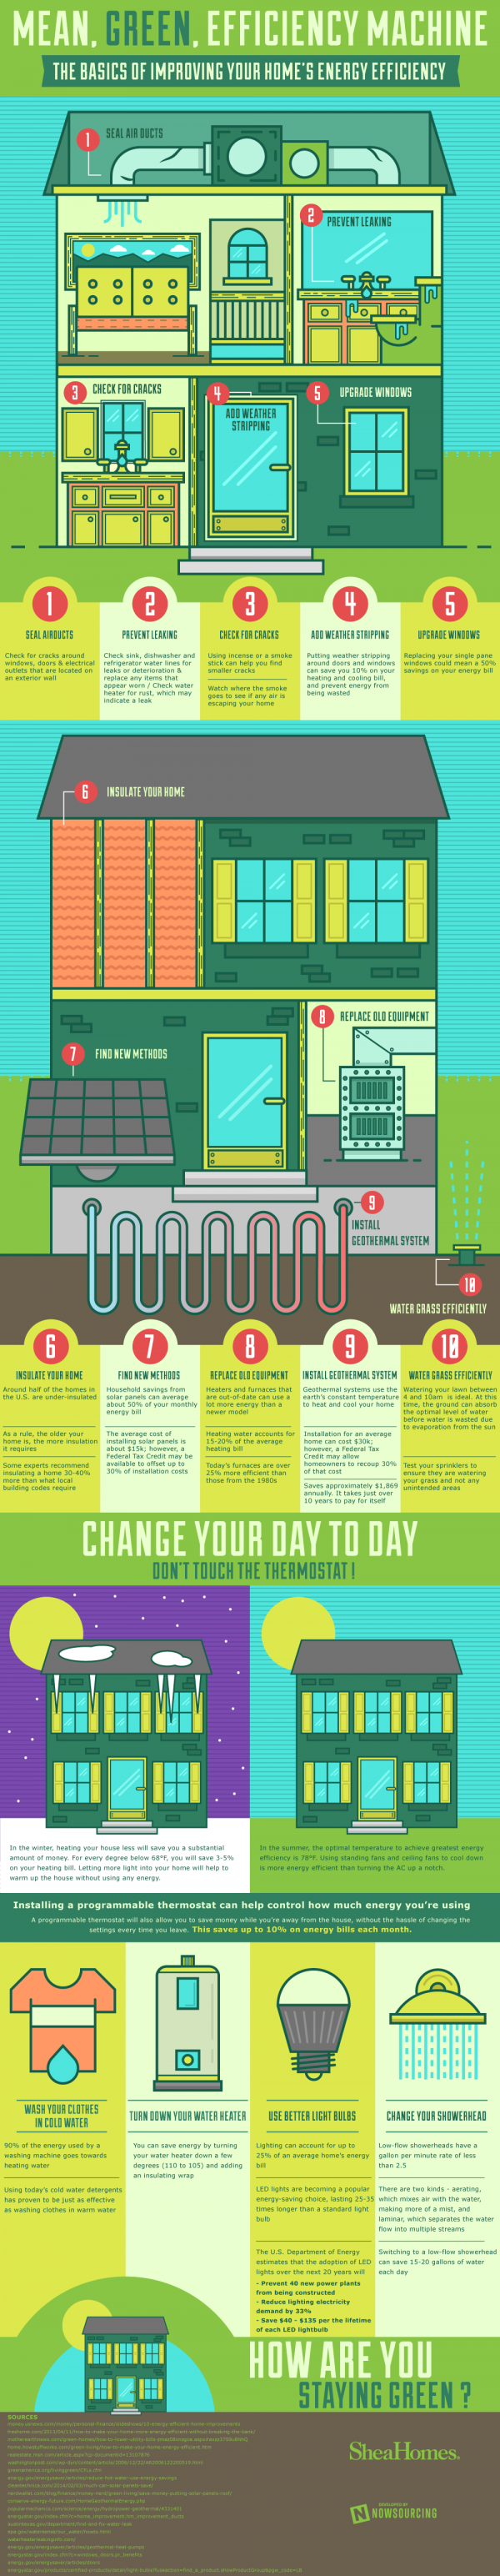 Improving Your Energy Efficiency